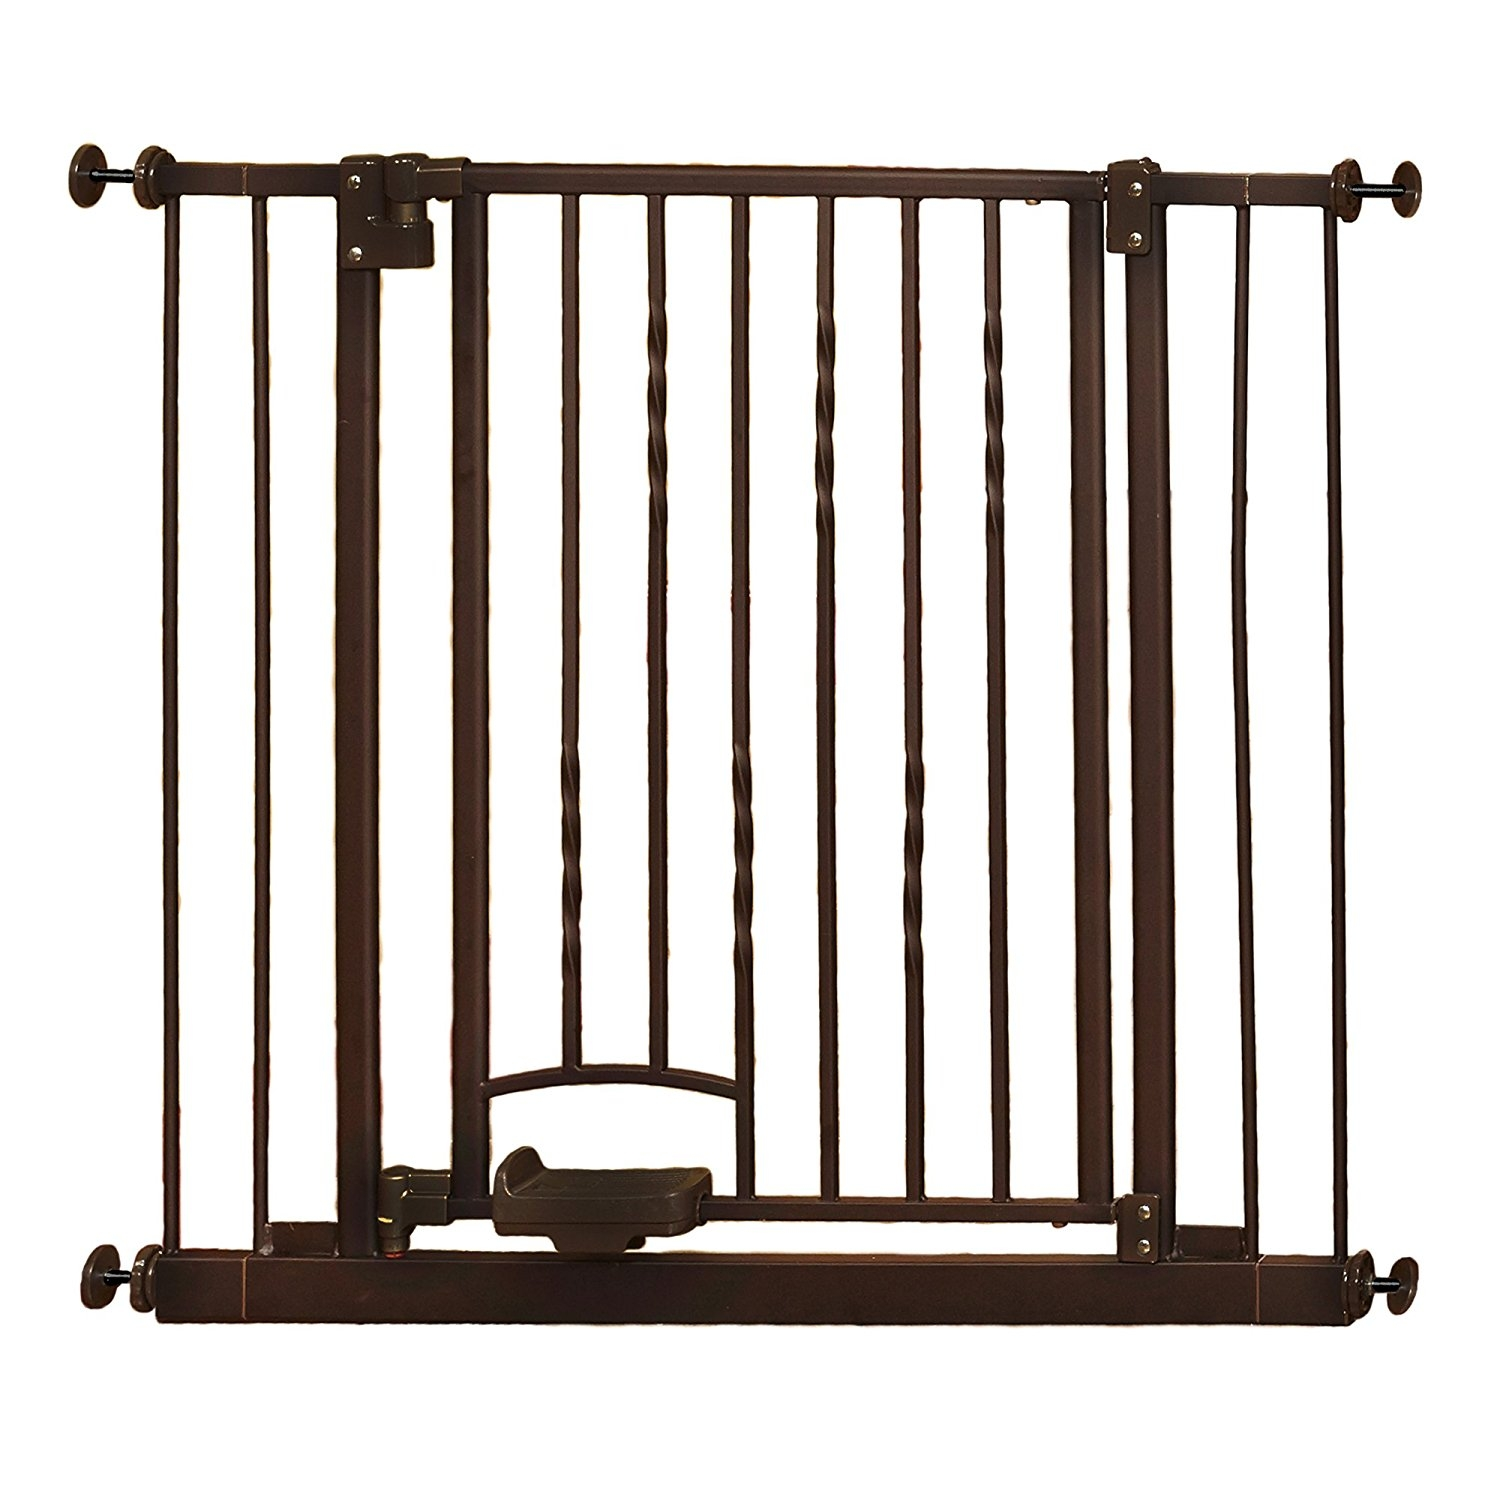 "North States Industries Supergate Step n Go Gate, Bronze, Fits Spaces between 31.25"" to 38.25"" Wide and 30""high"